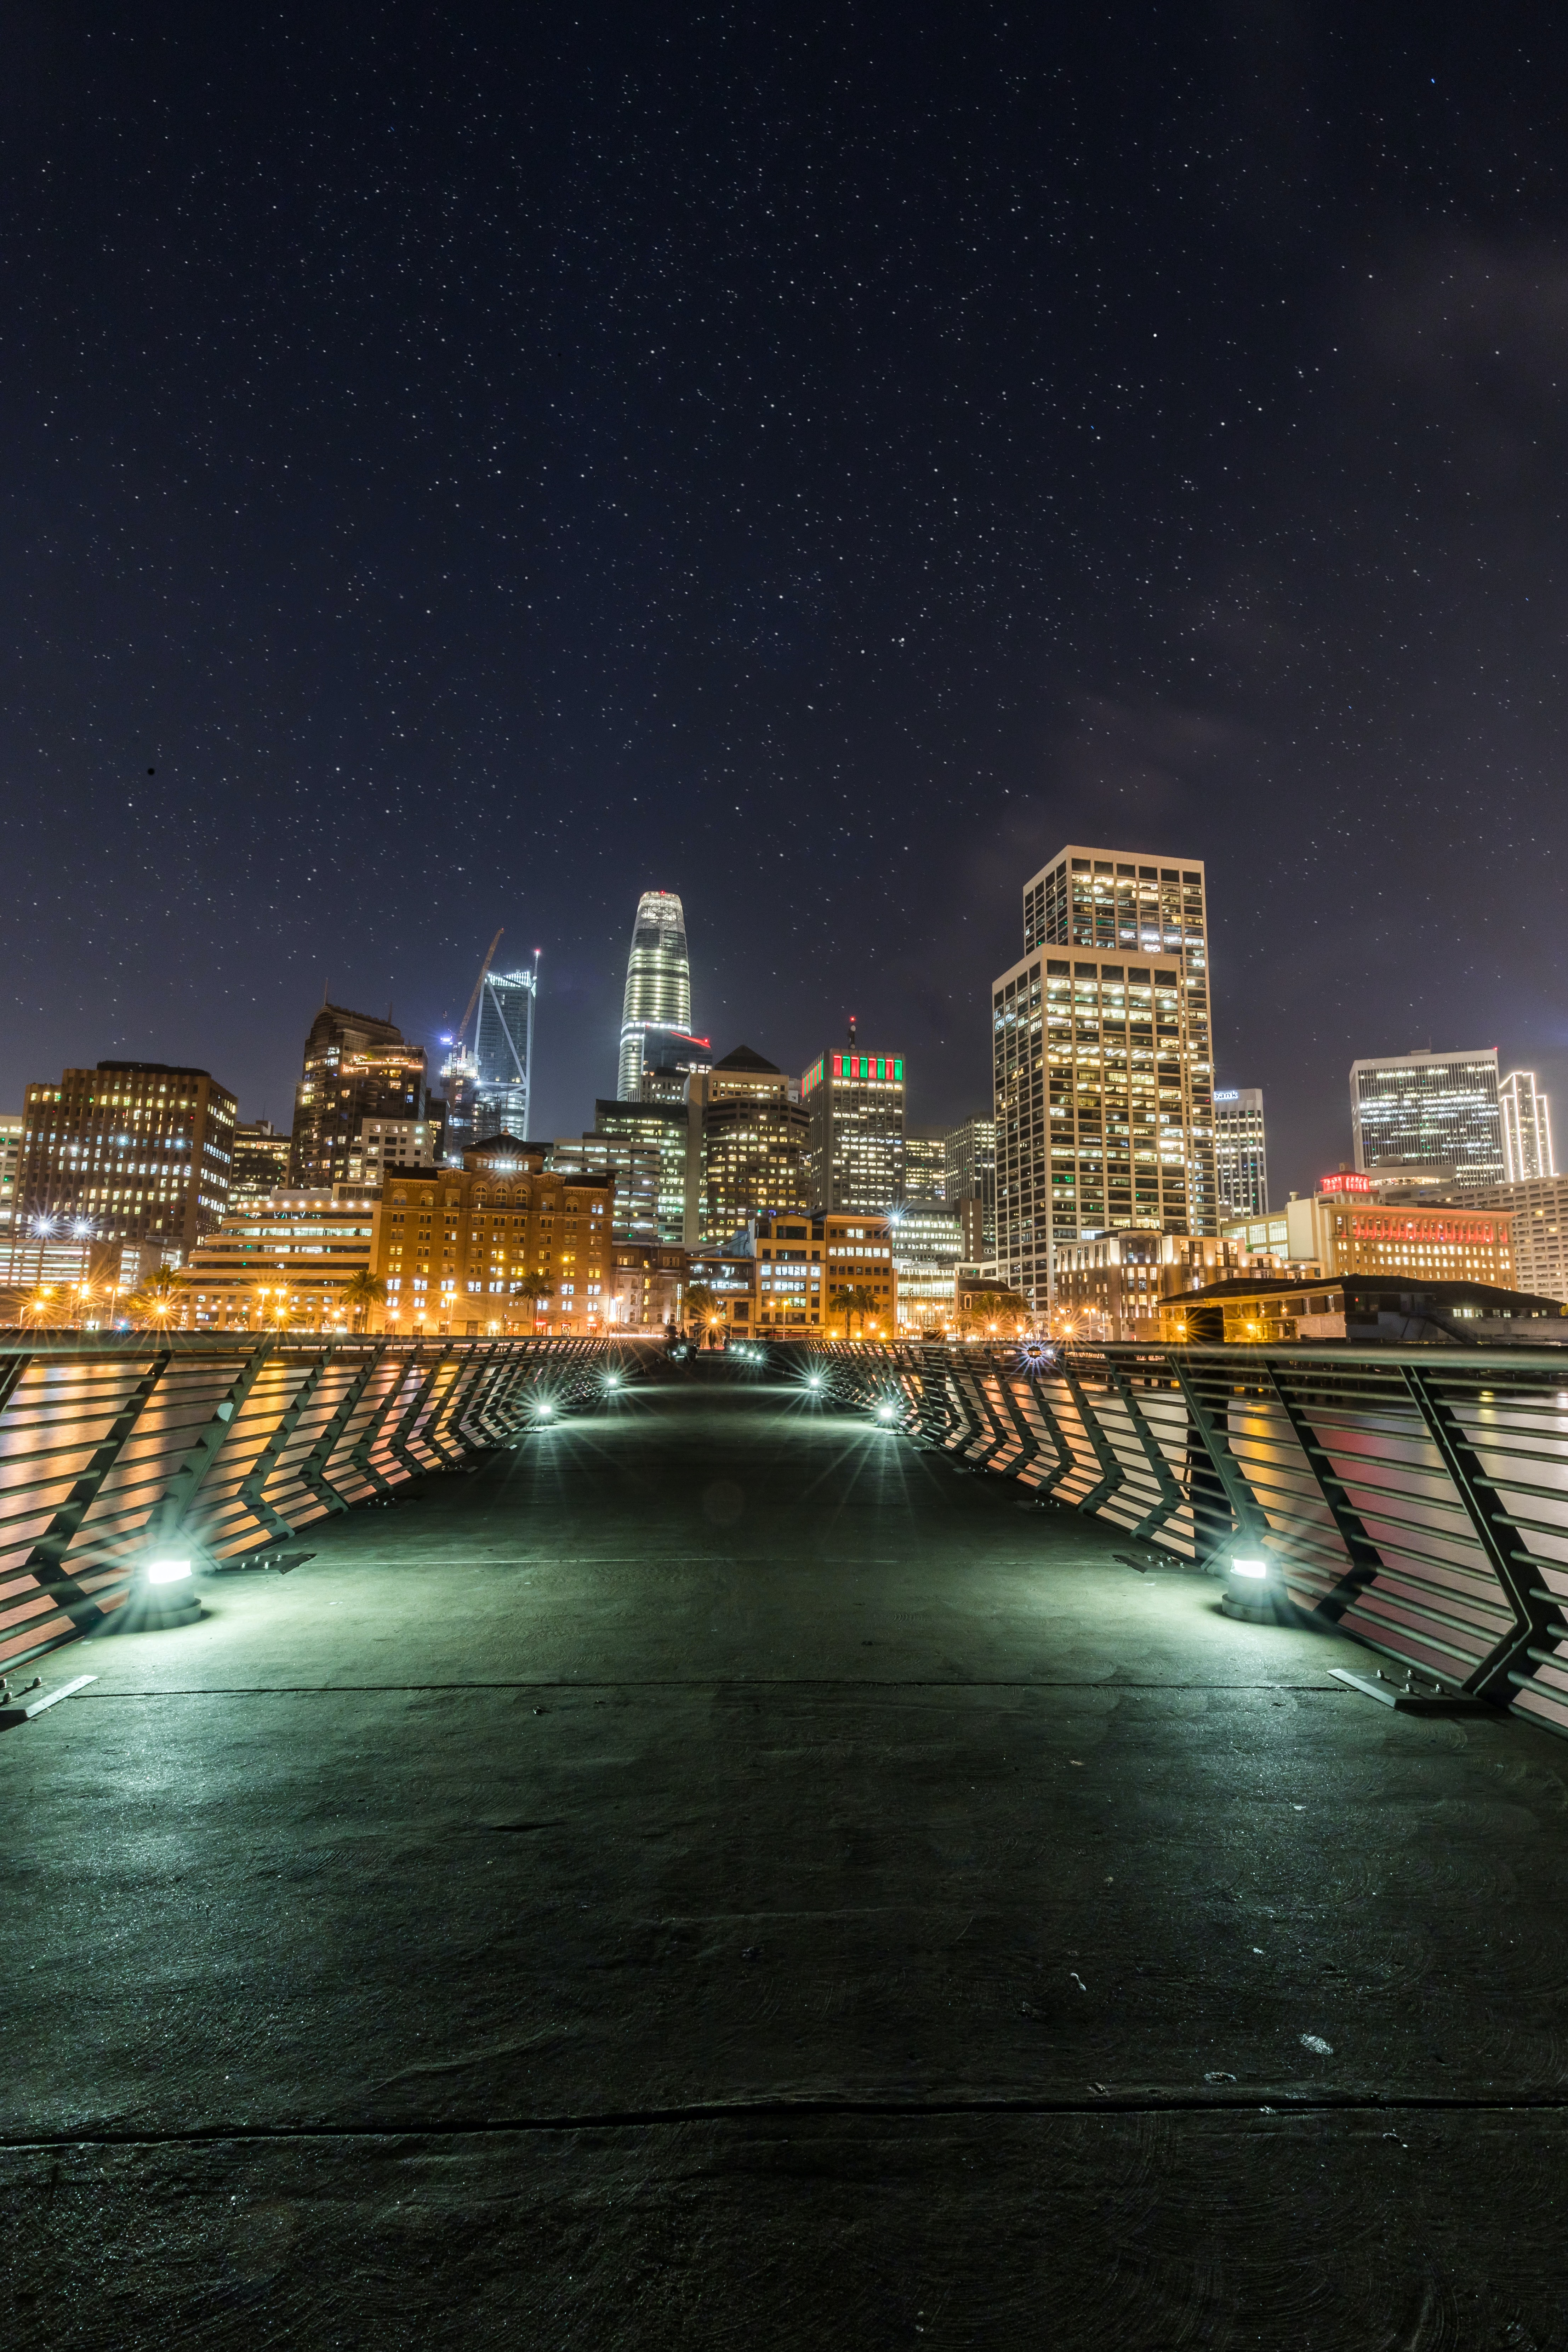 cityscape photo near bridge